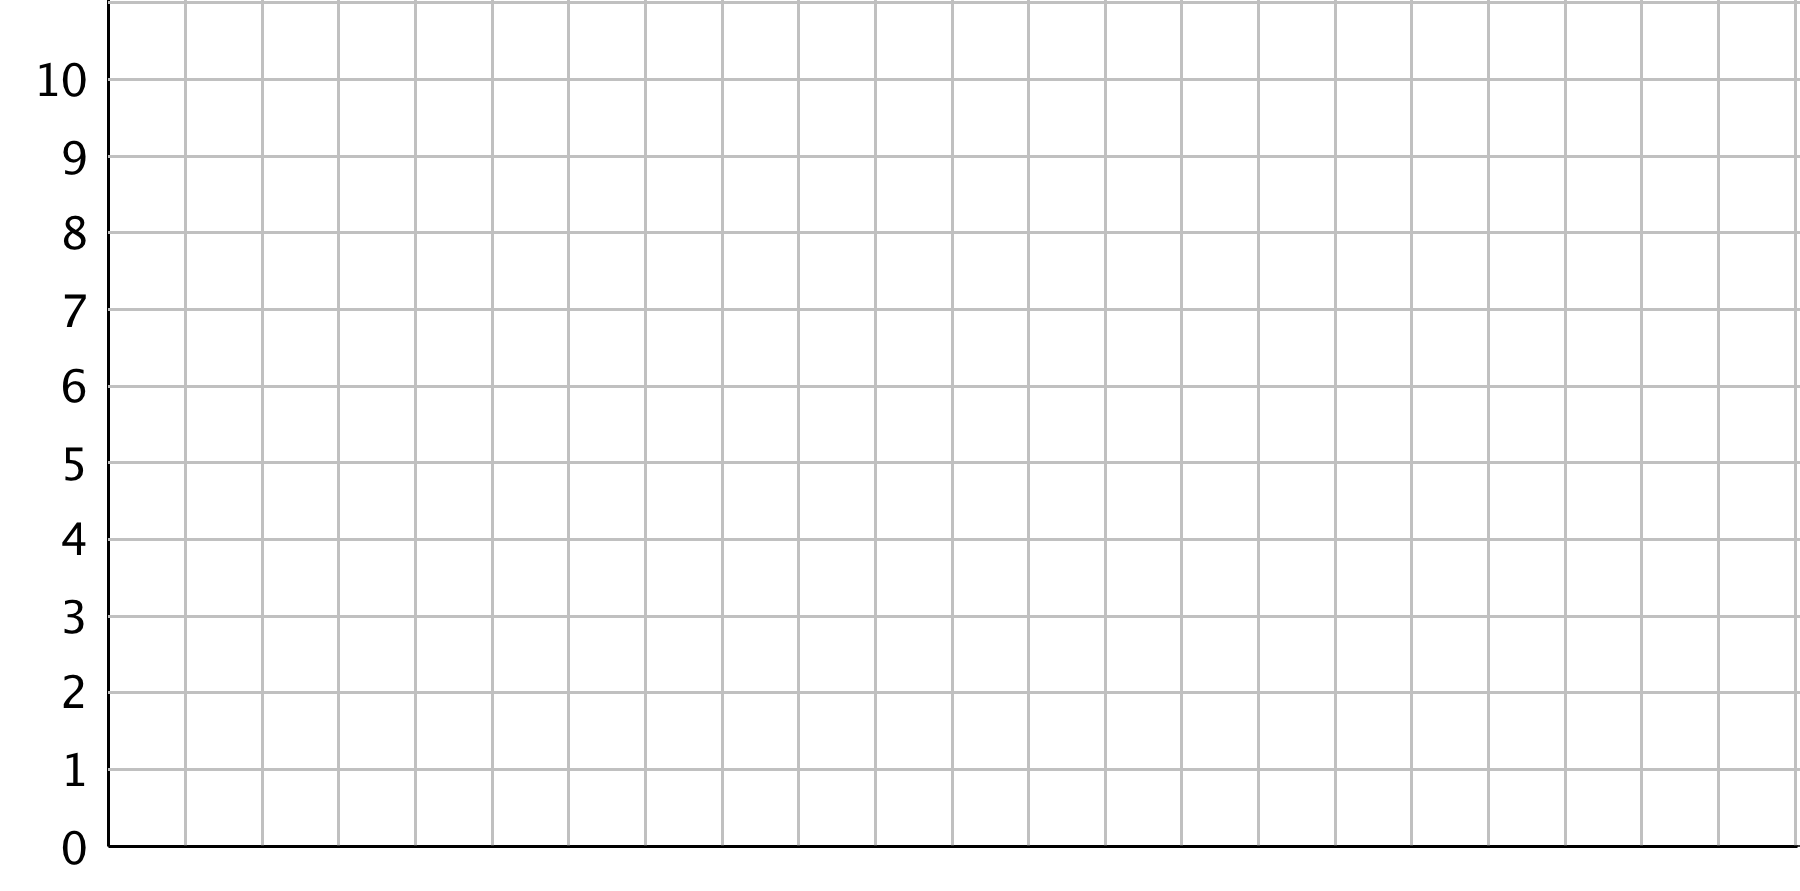 A blank coordinate grid. The vertical axis has the numbers 0 through 10 indicated. The horizontal axis has 21 grid lines with no labels.